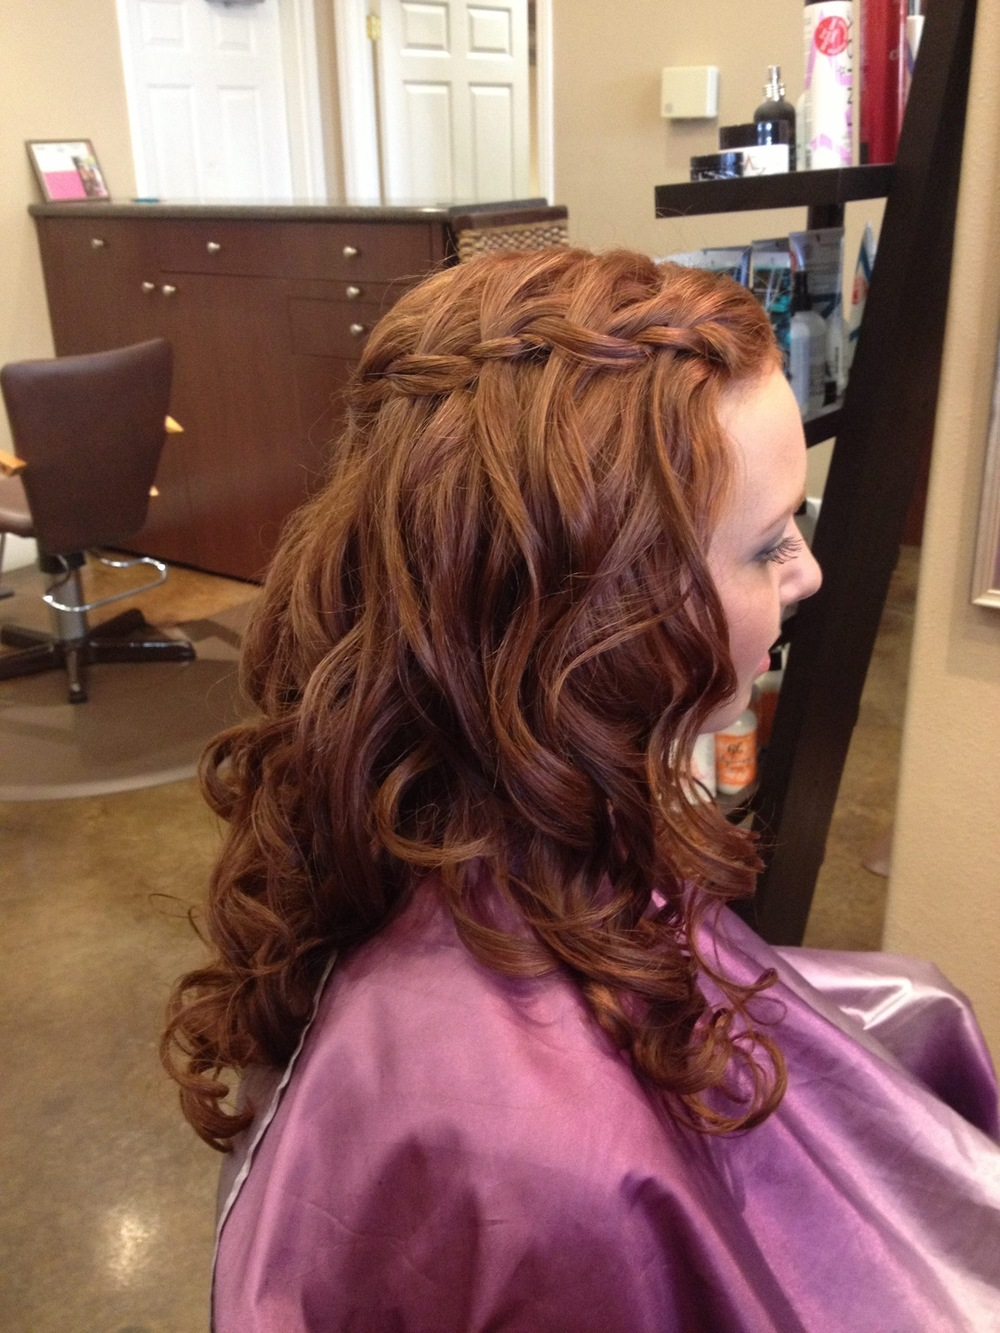 diva-salon-prom-dance-2512.jpg